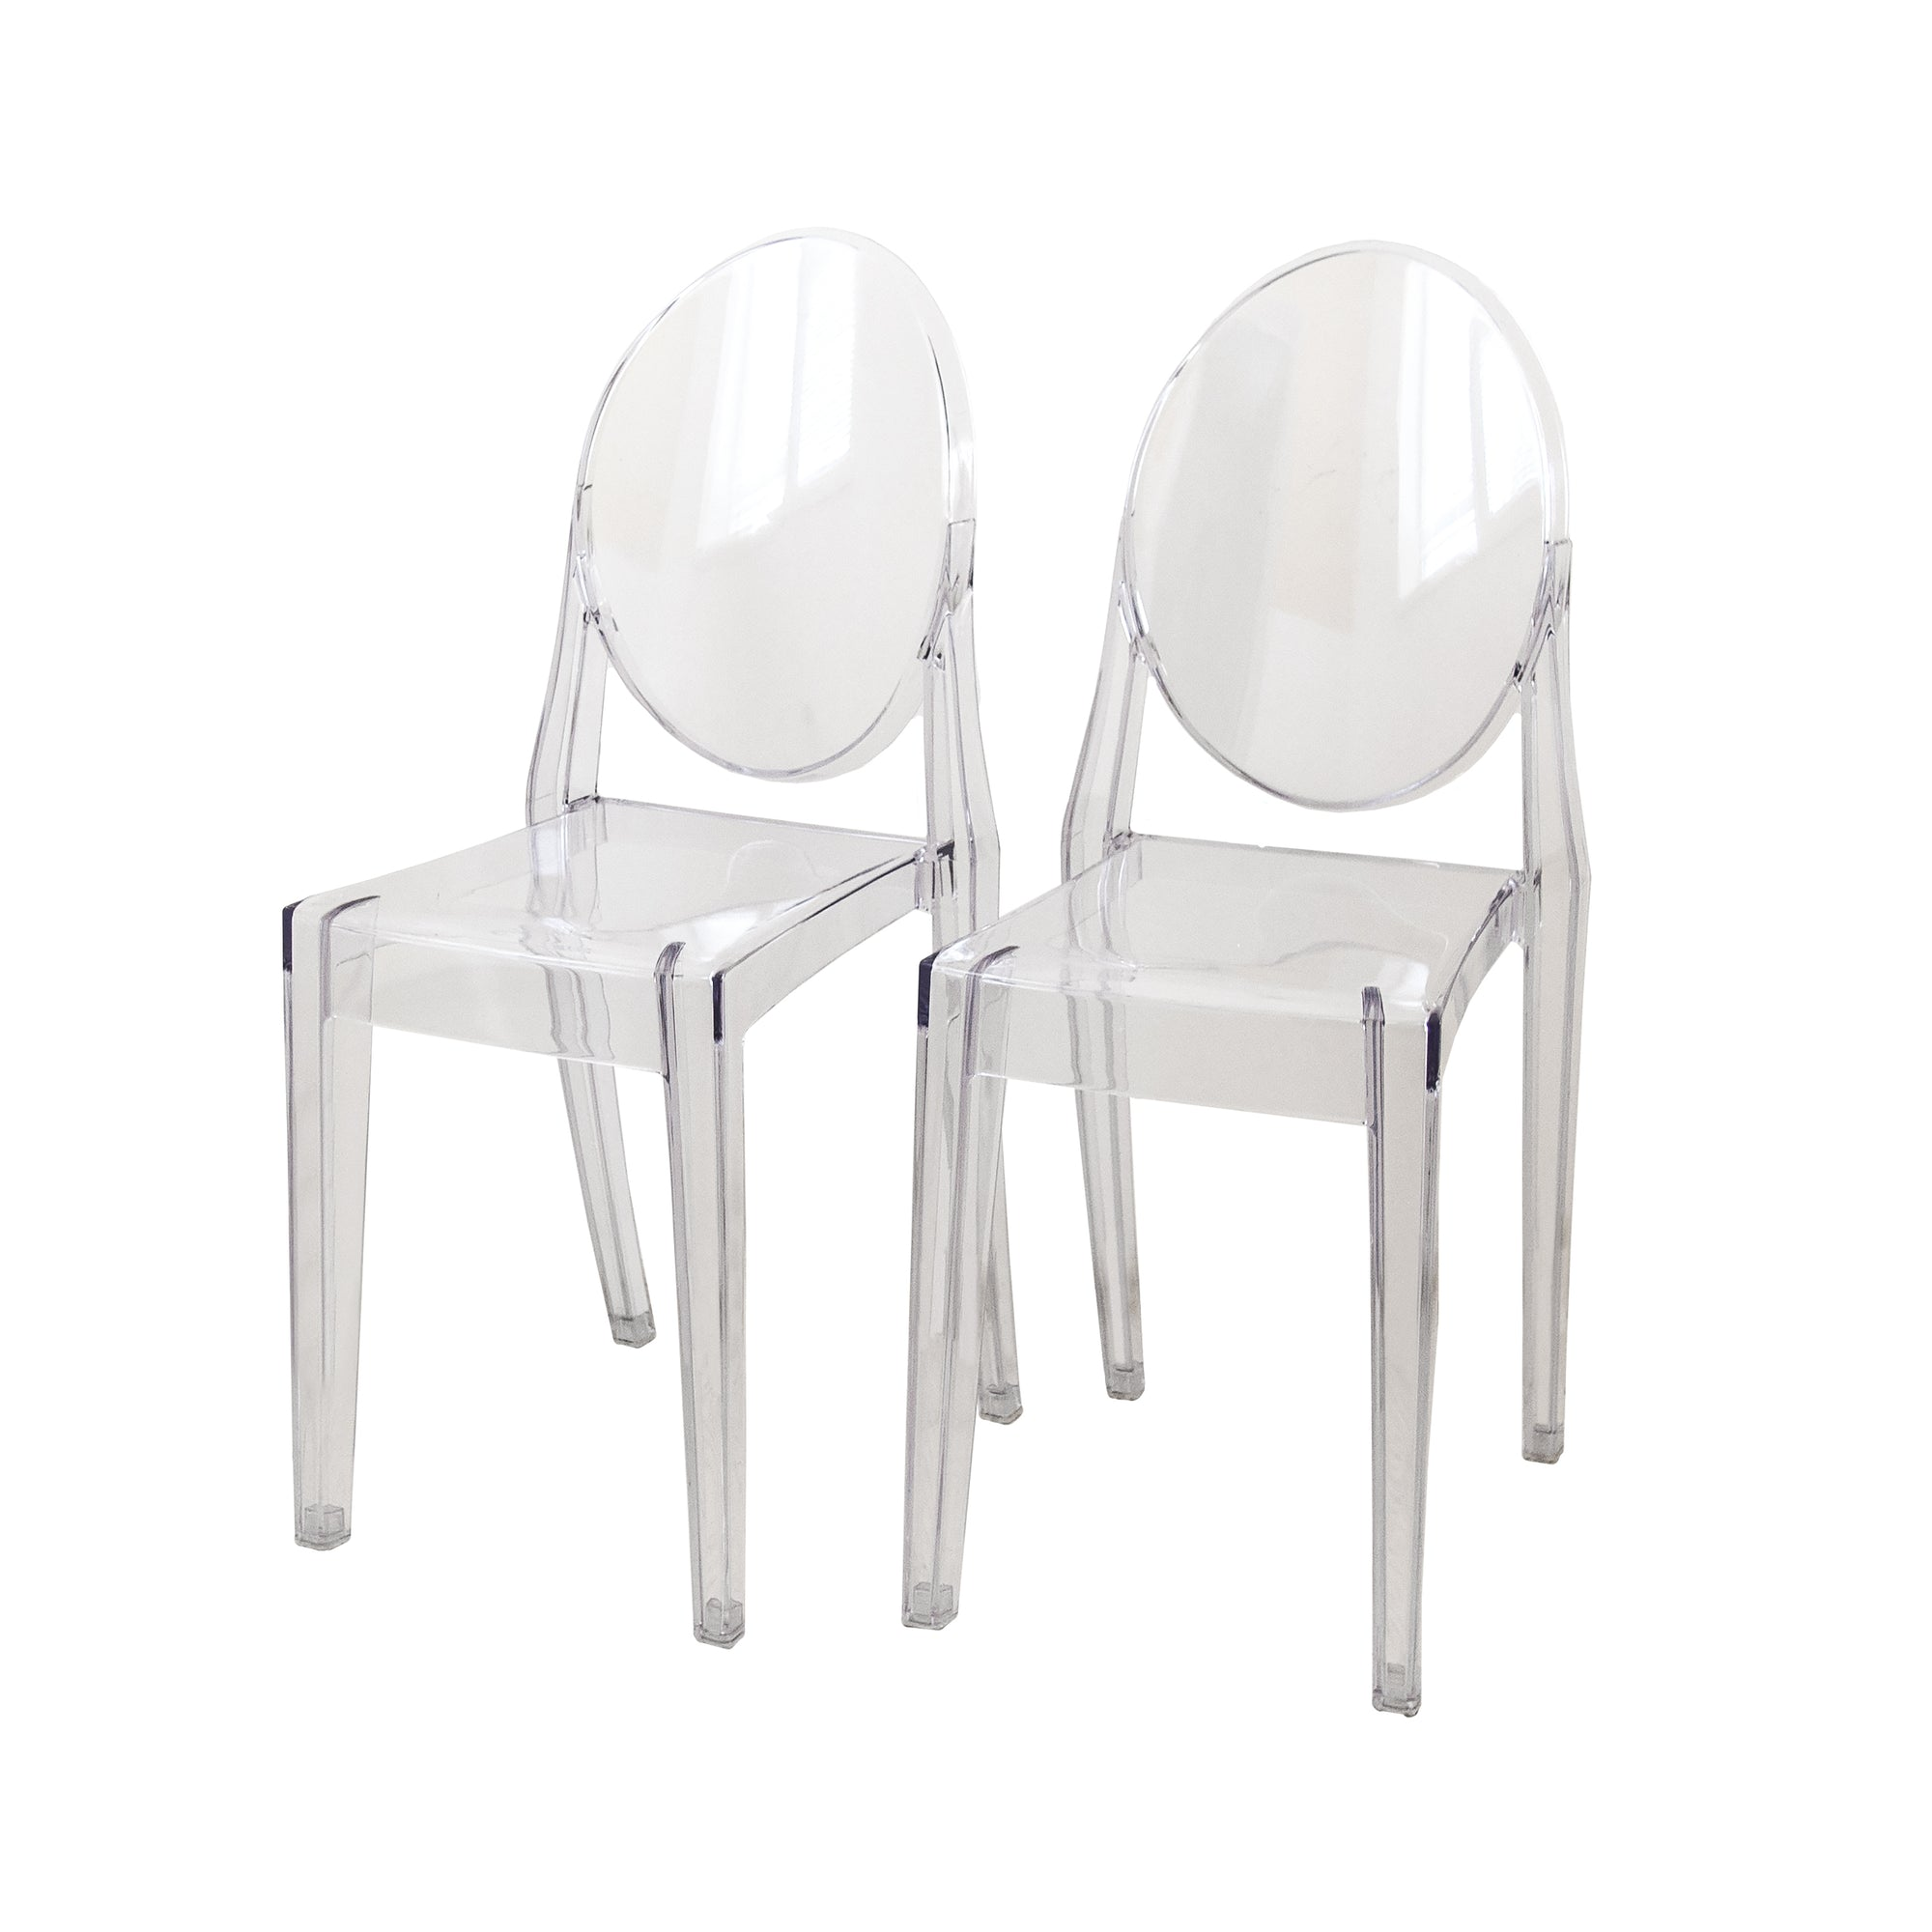 Admirable Set Of Four Transparent Contemporary Modern Dining Room Chairs Lounge Chairs Caraccident5 Cool Chair Designs And Ideas Caraccident5Info